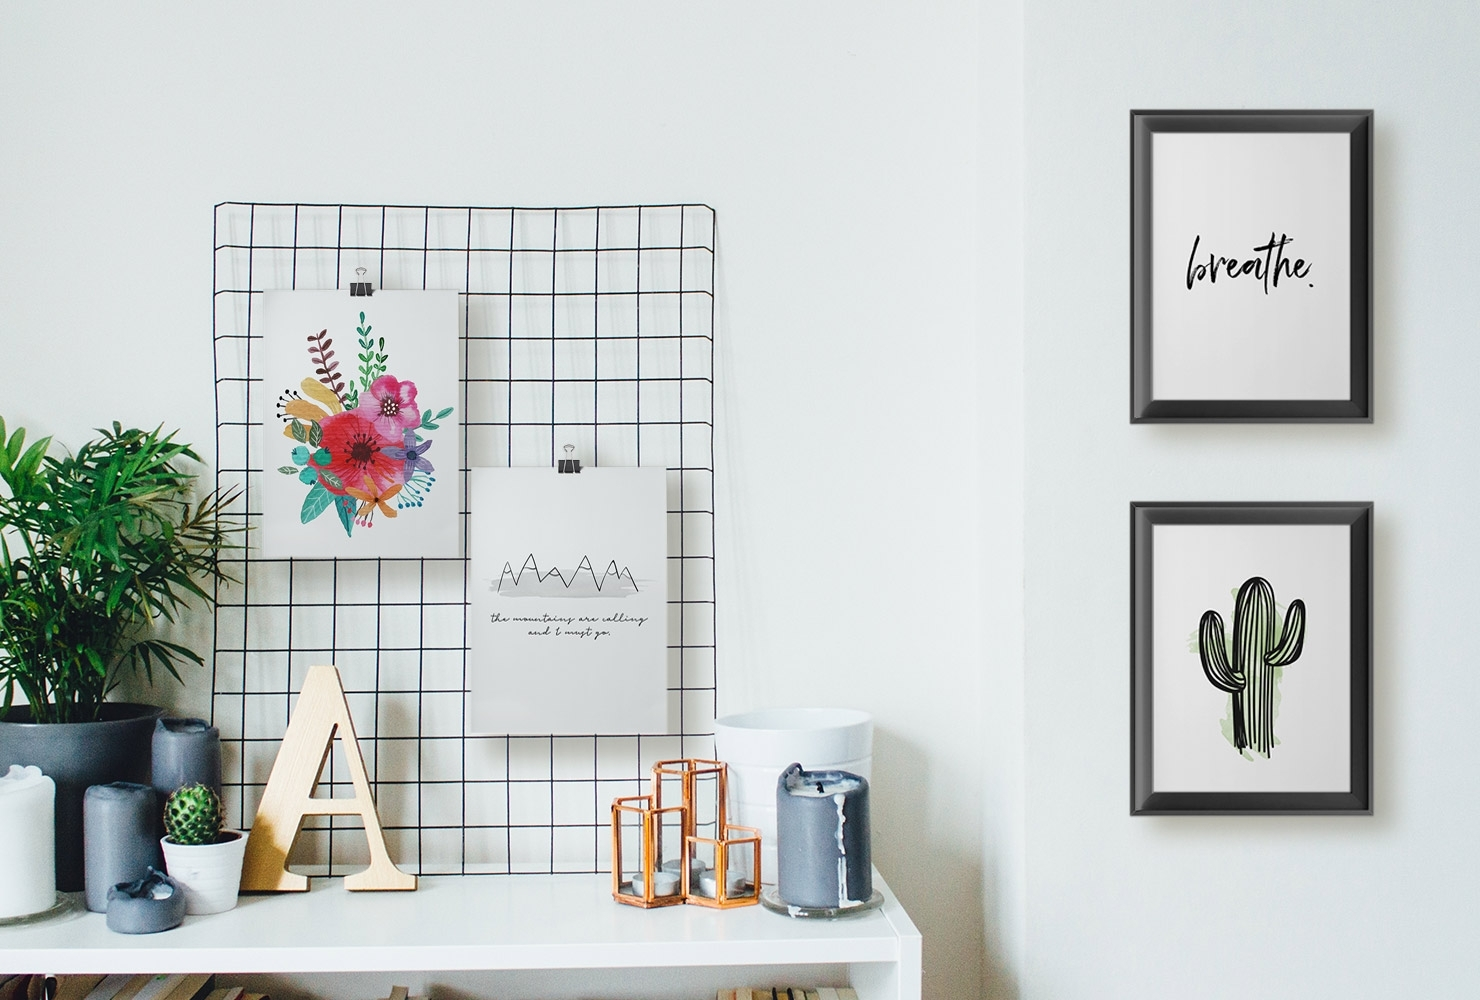 25 Unique Diy Wall Art Ideas (With Printables) | Shutterfly With Regard To Newest Unique Wall Art (Gallery 9 of 15)